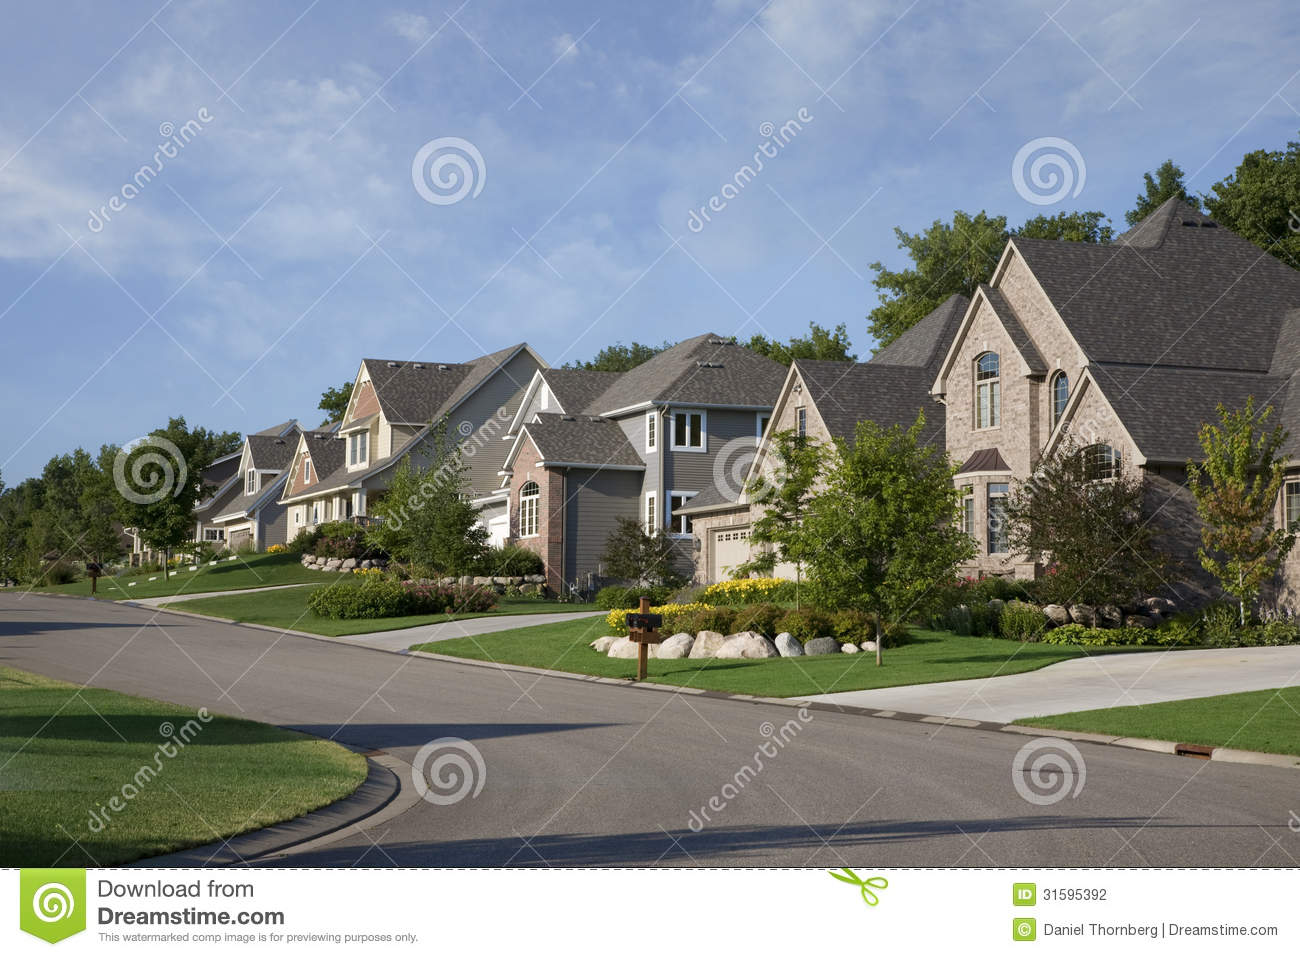 Houses On Upscale Suburban Street In Morning Sunlight Stock